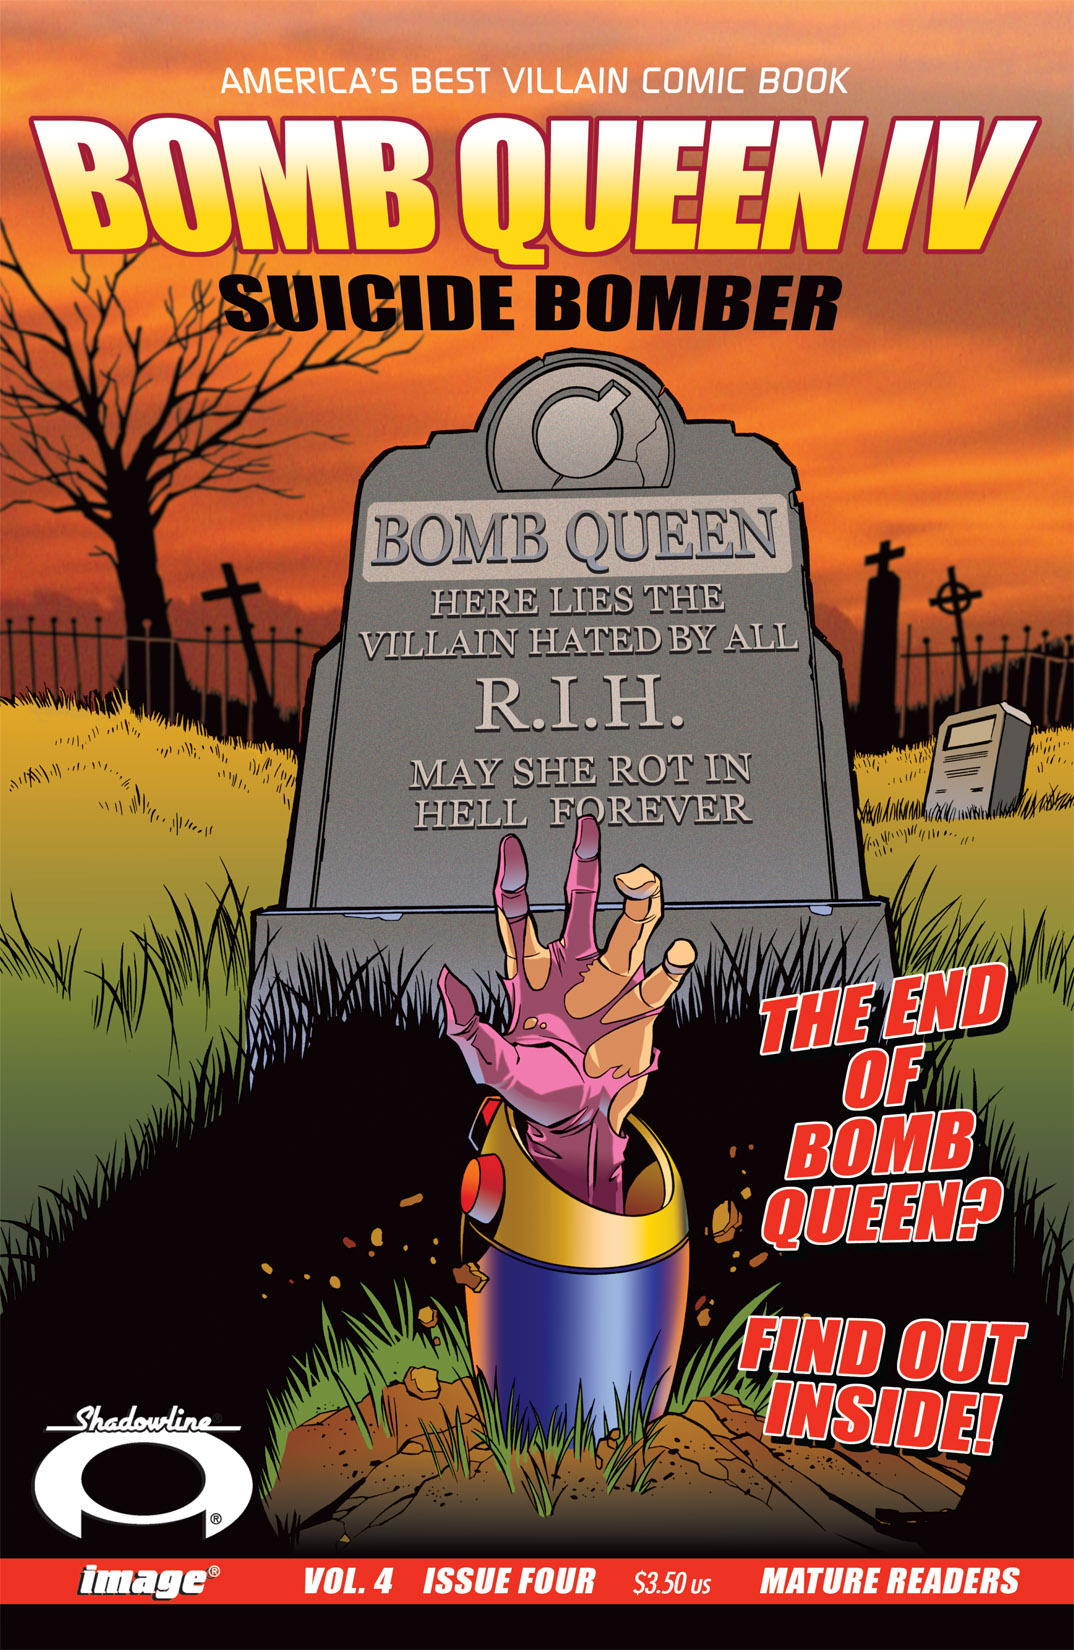 Bomb Queen IV Suicide Bomber Issue 4